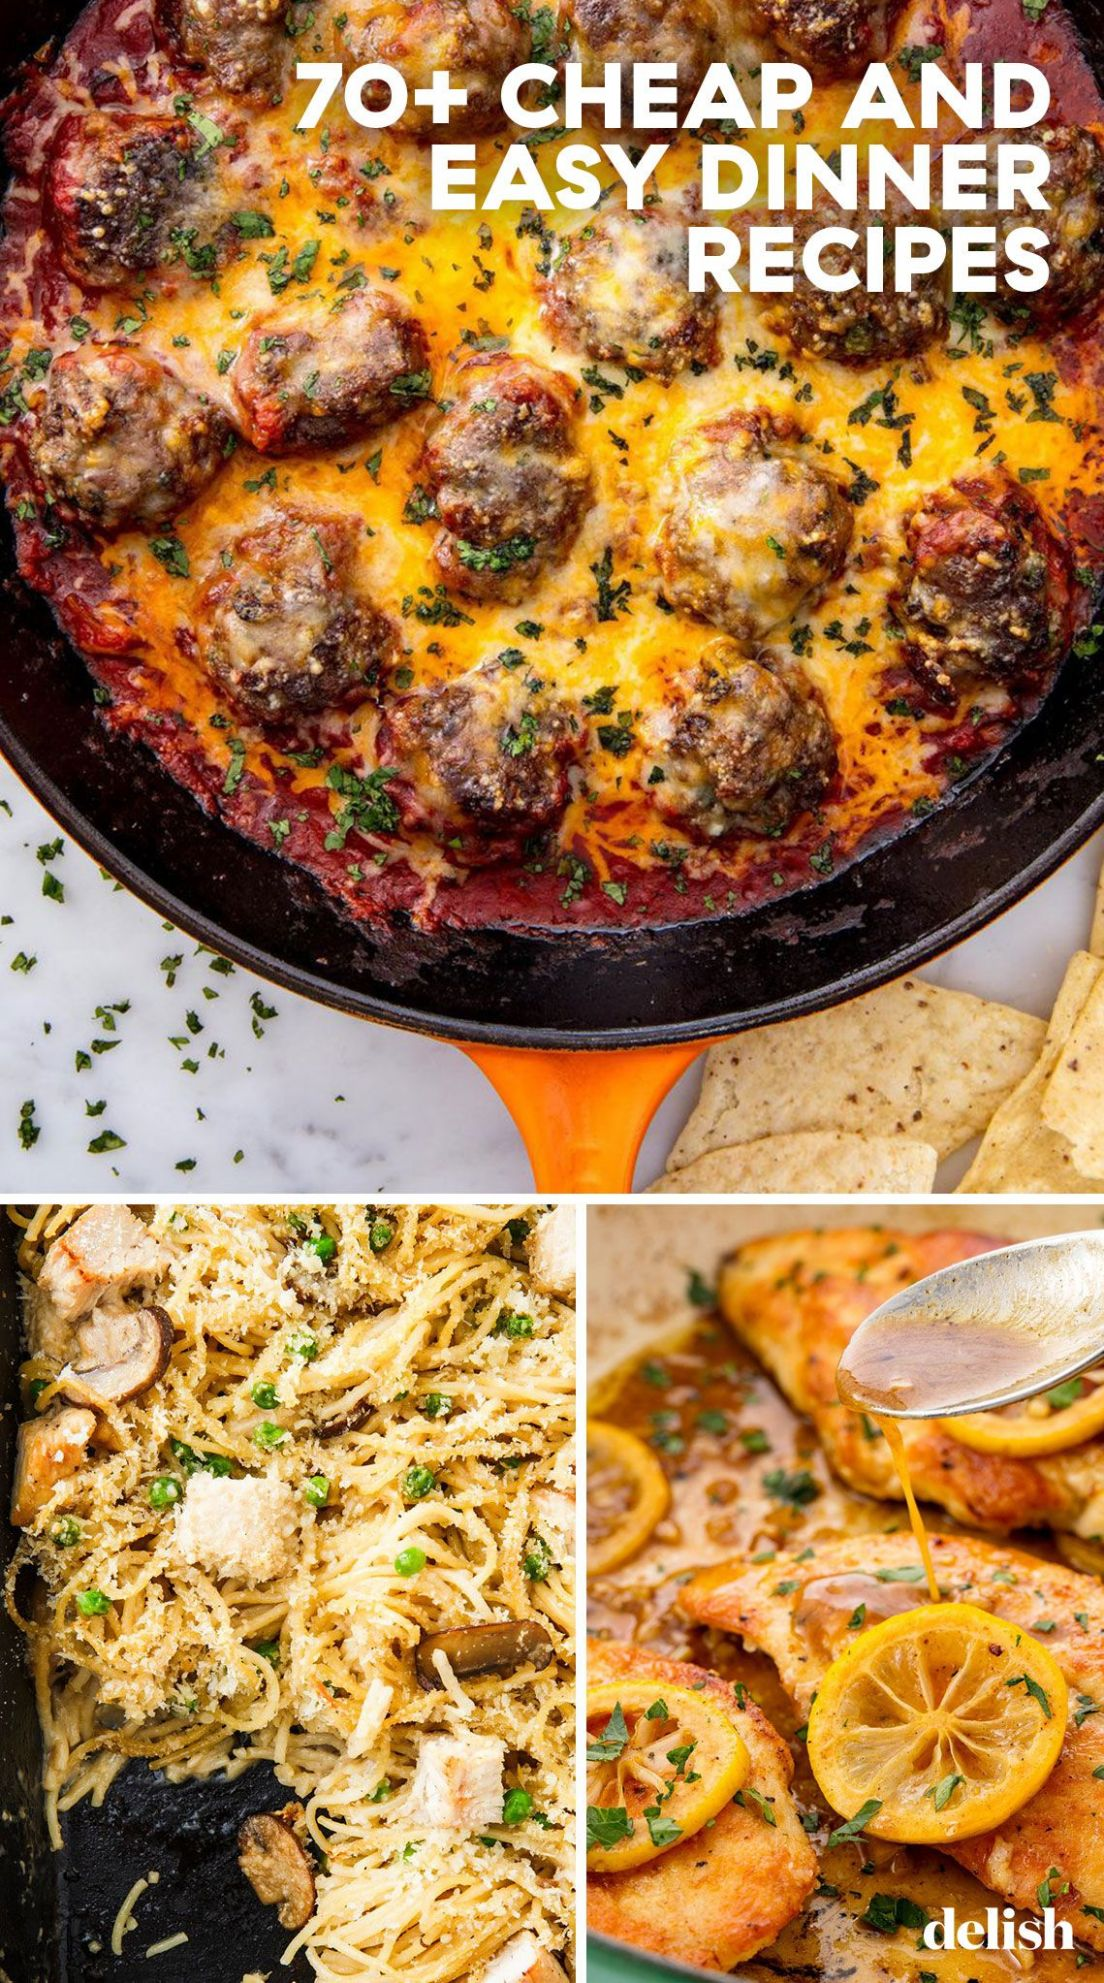 11+ Easy Cheap Dinner Recipes - Inexpensive Dinner Ideas - Delish Recipes Cooking Quick Dinners